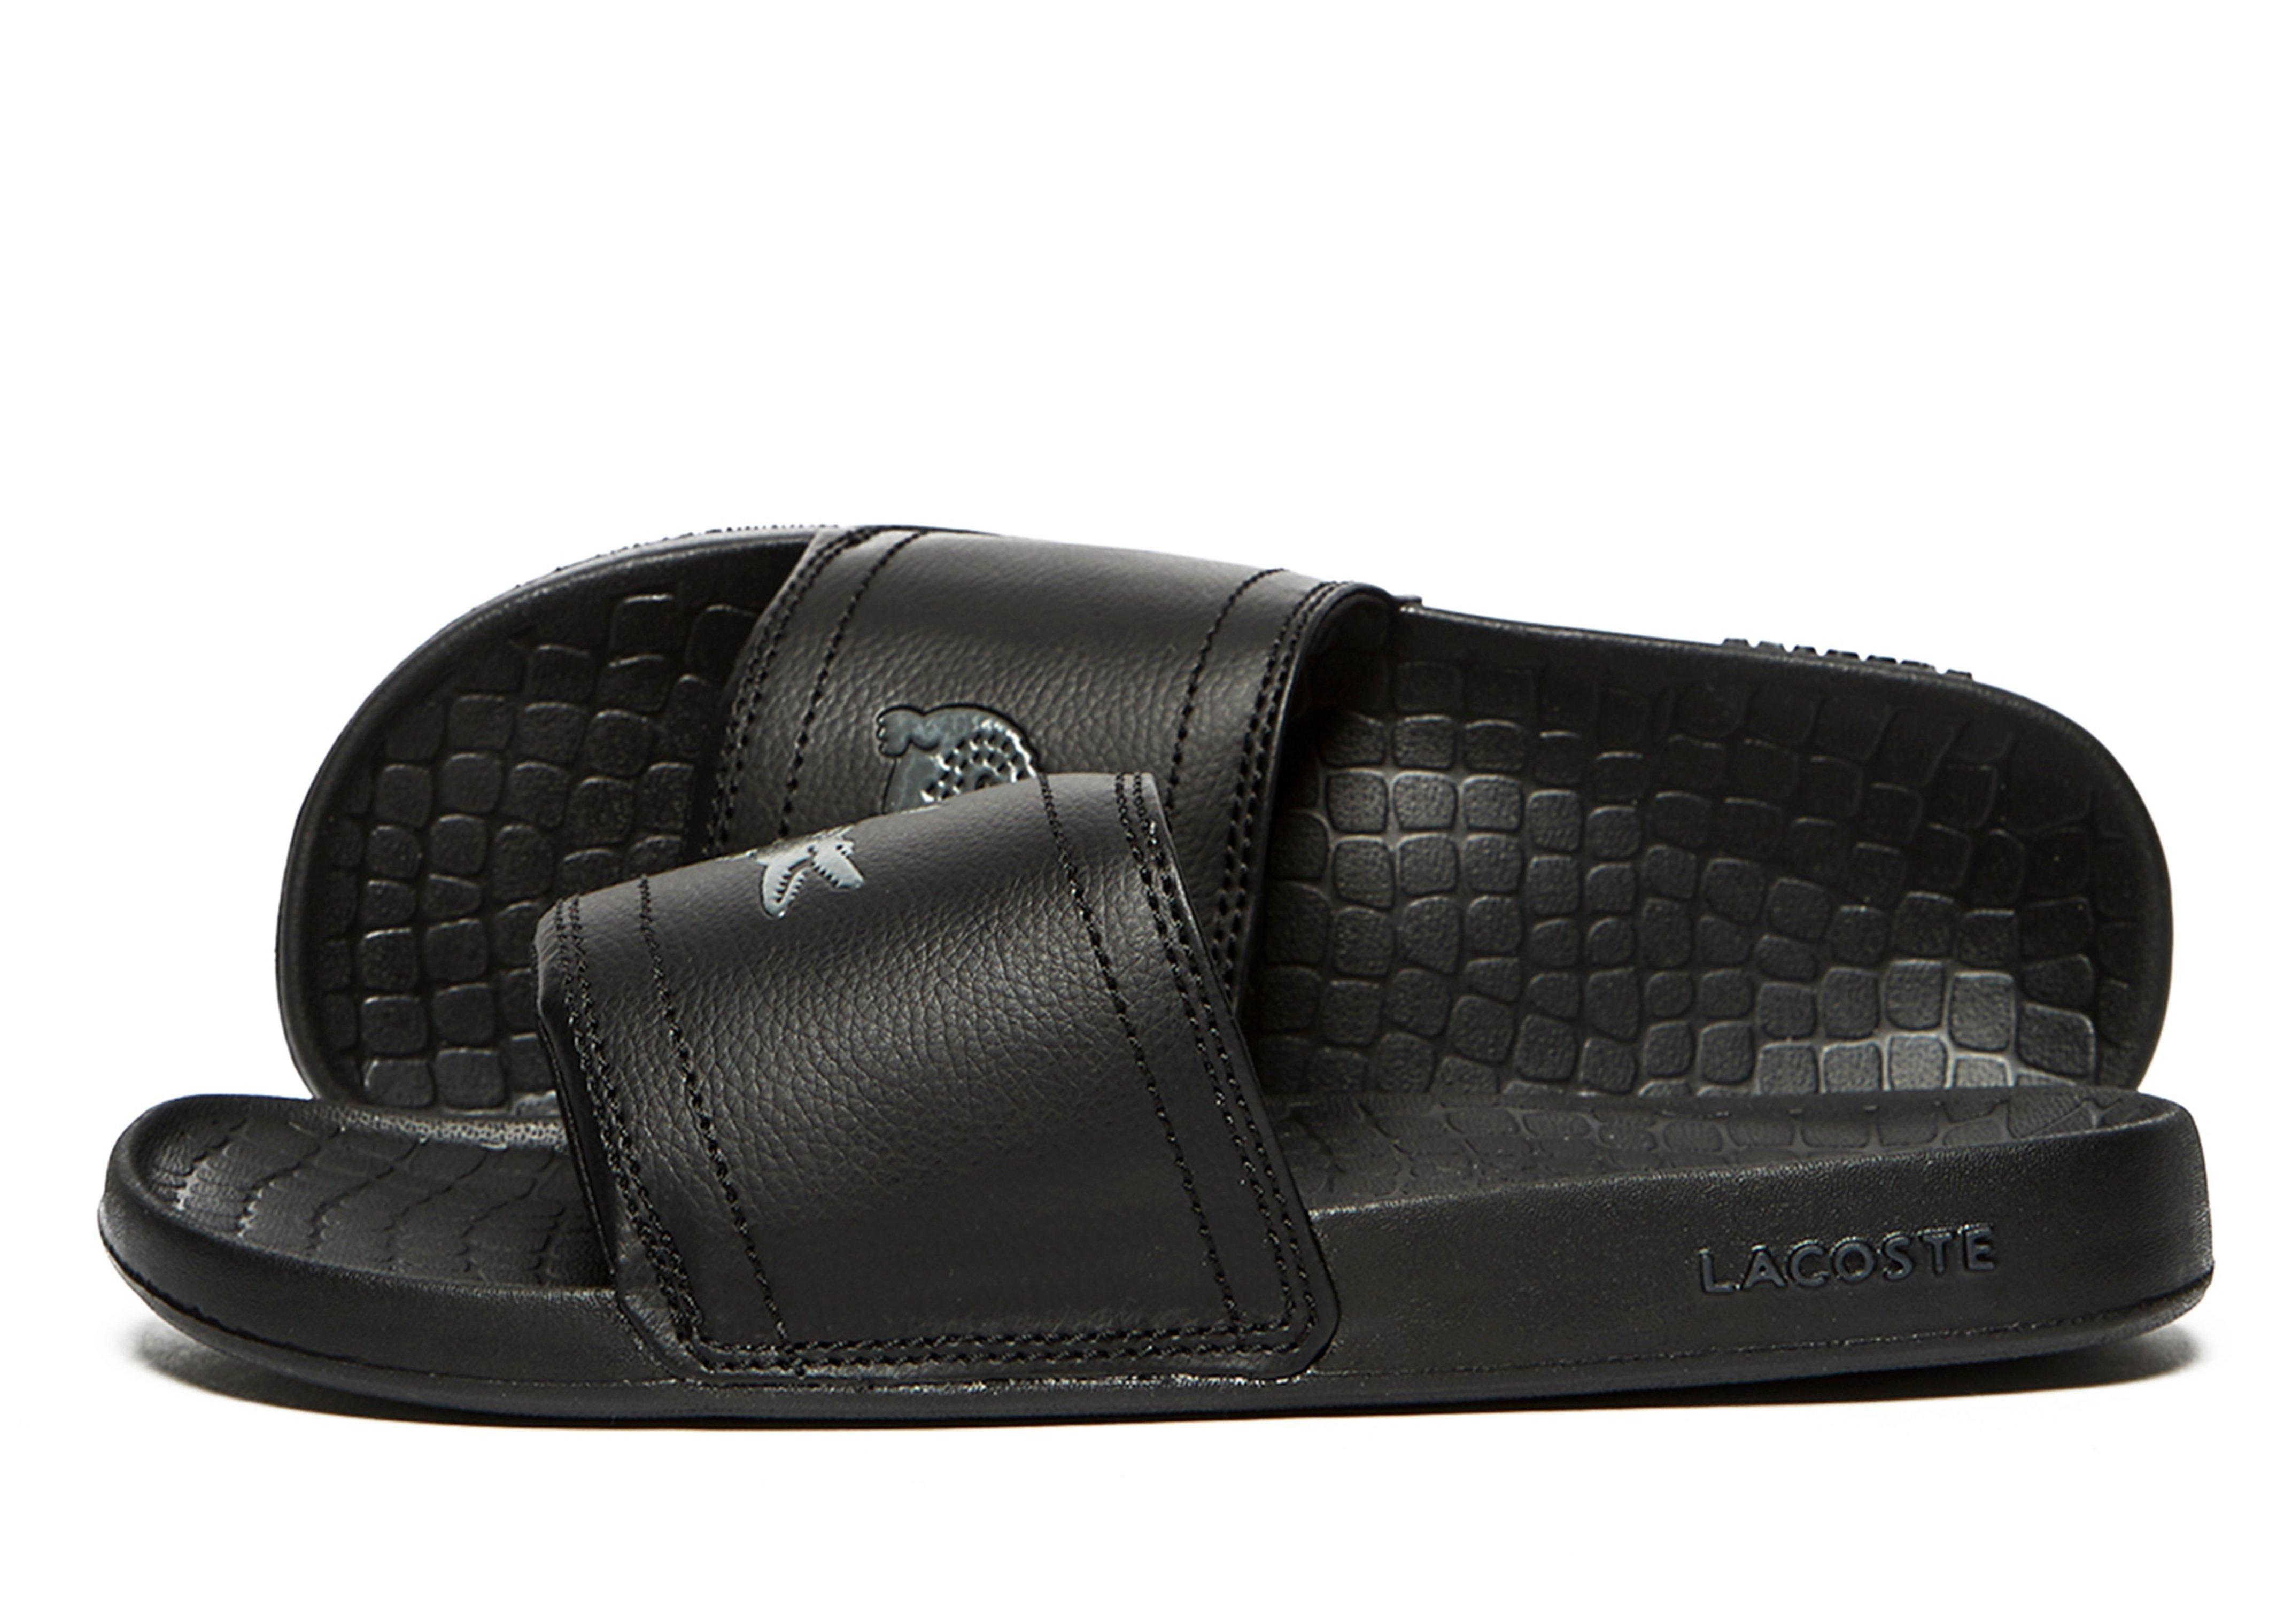 50176958ca7e Lacoste - Black Frasier Slide for Men - Lyst. View fullscreen